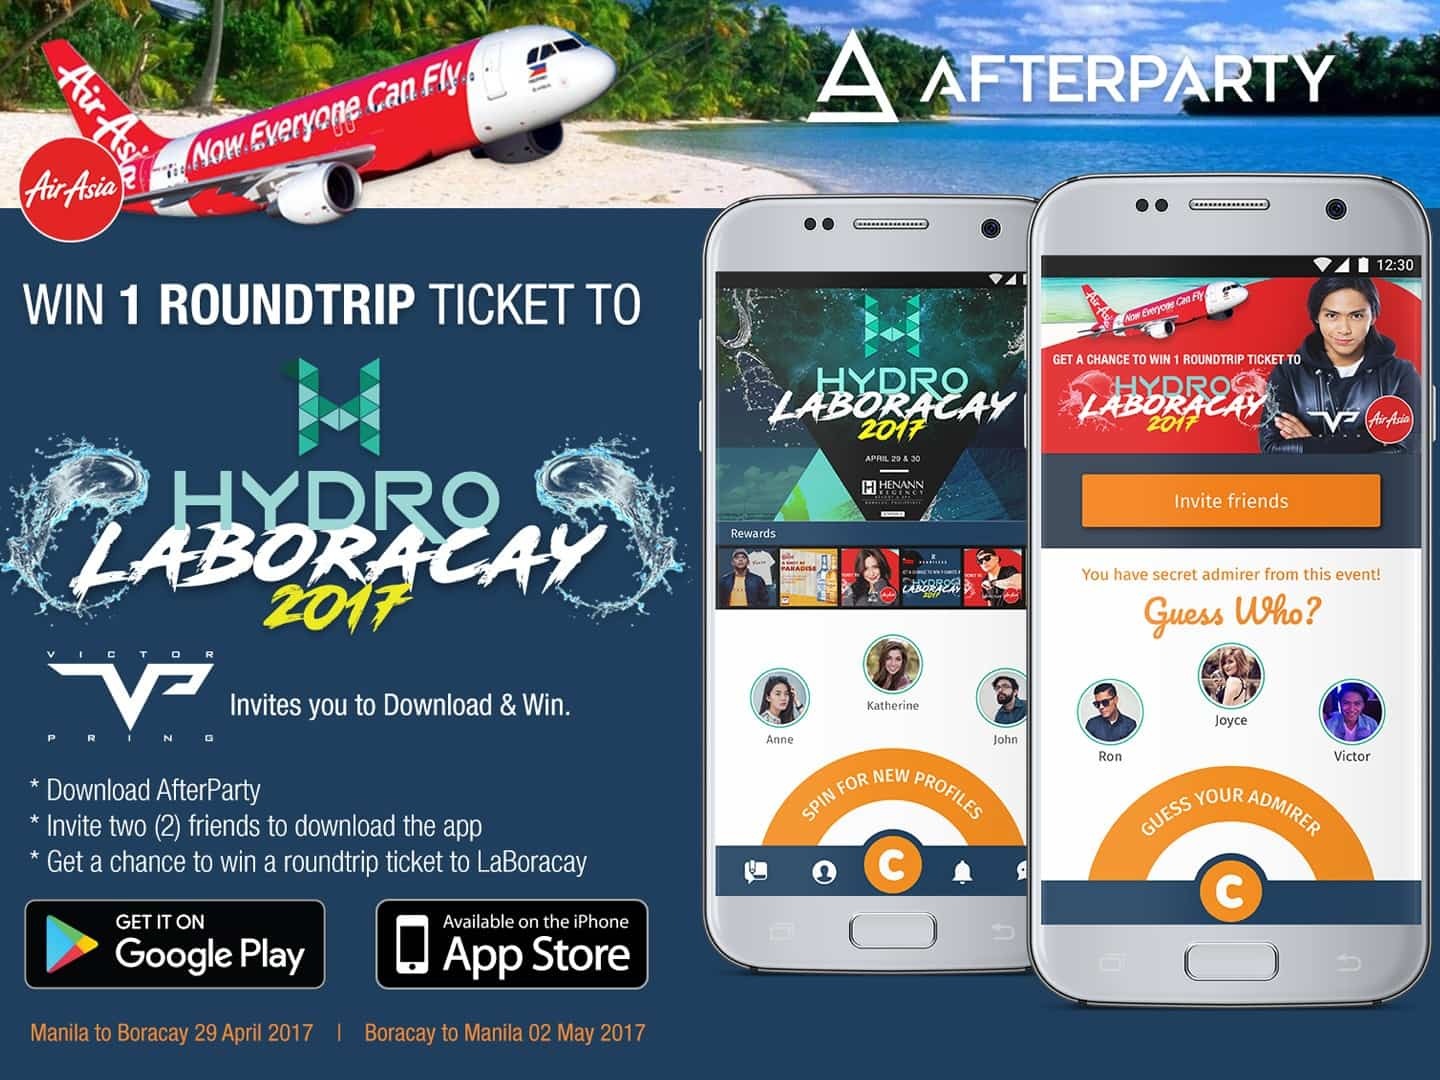 AfterParty Air Asia at Hydro Laboracay 2017